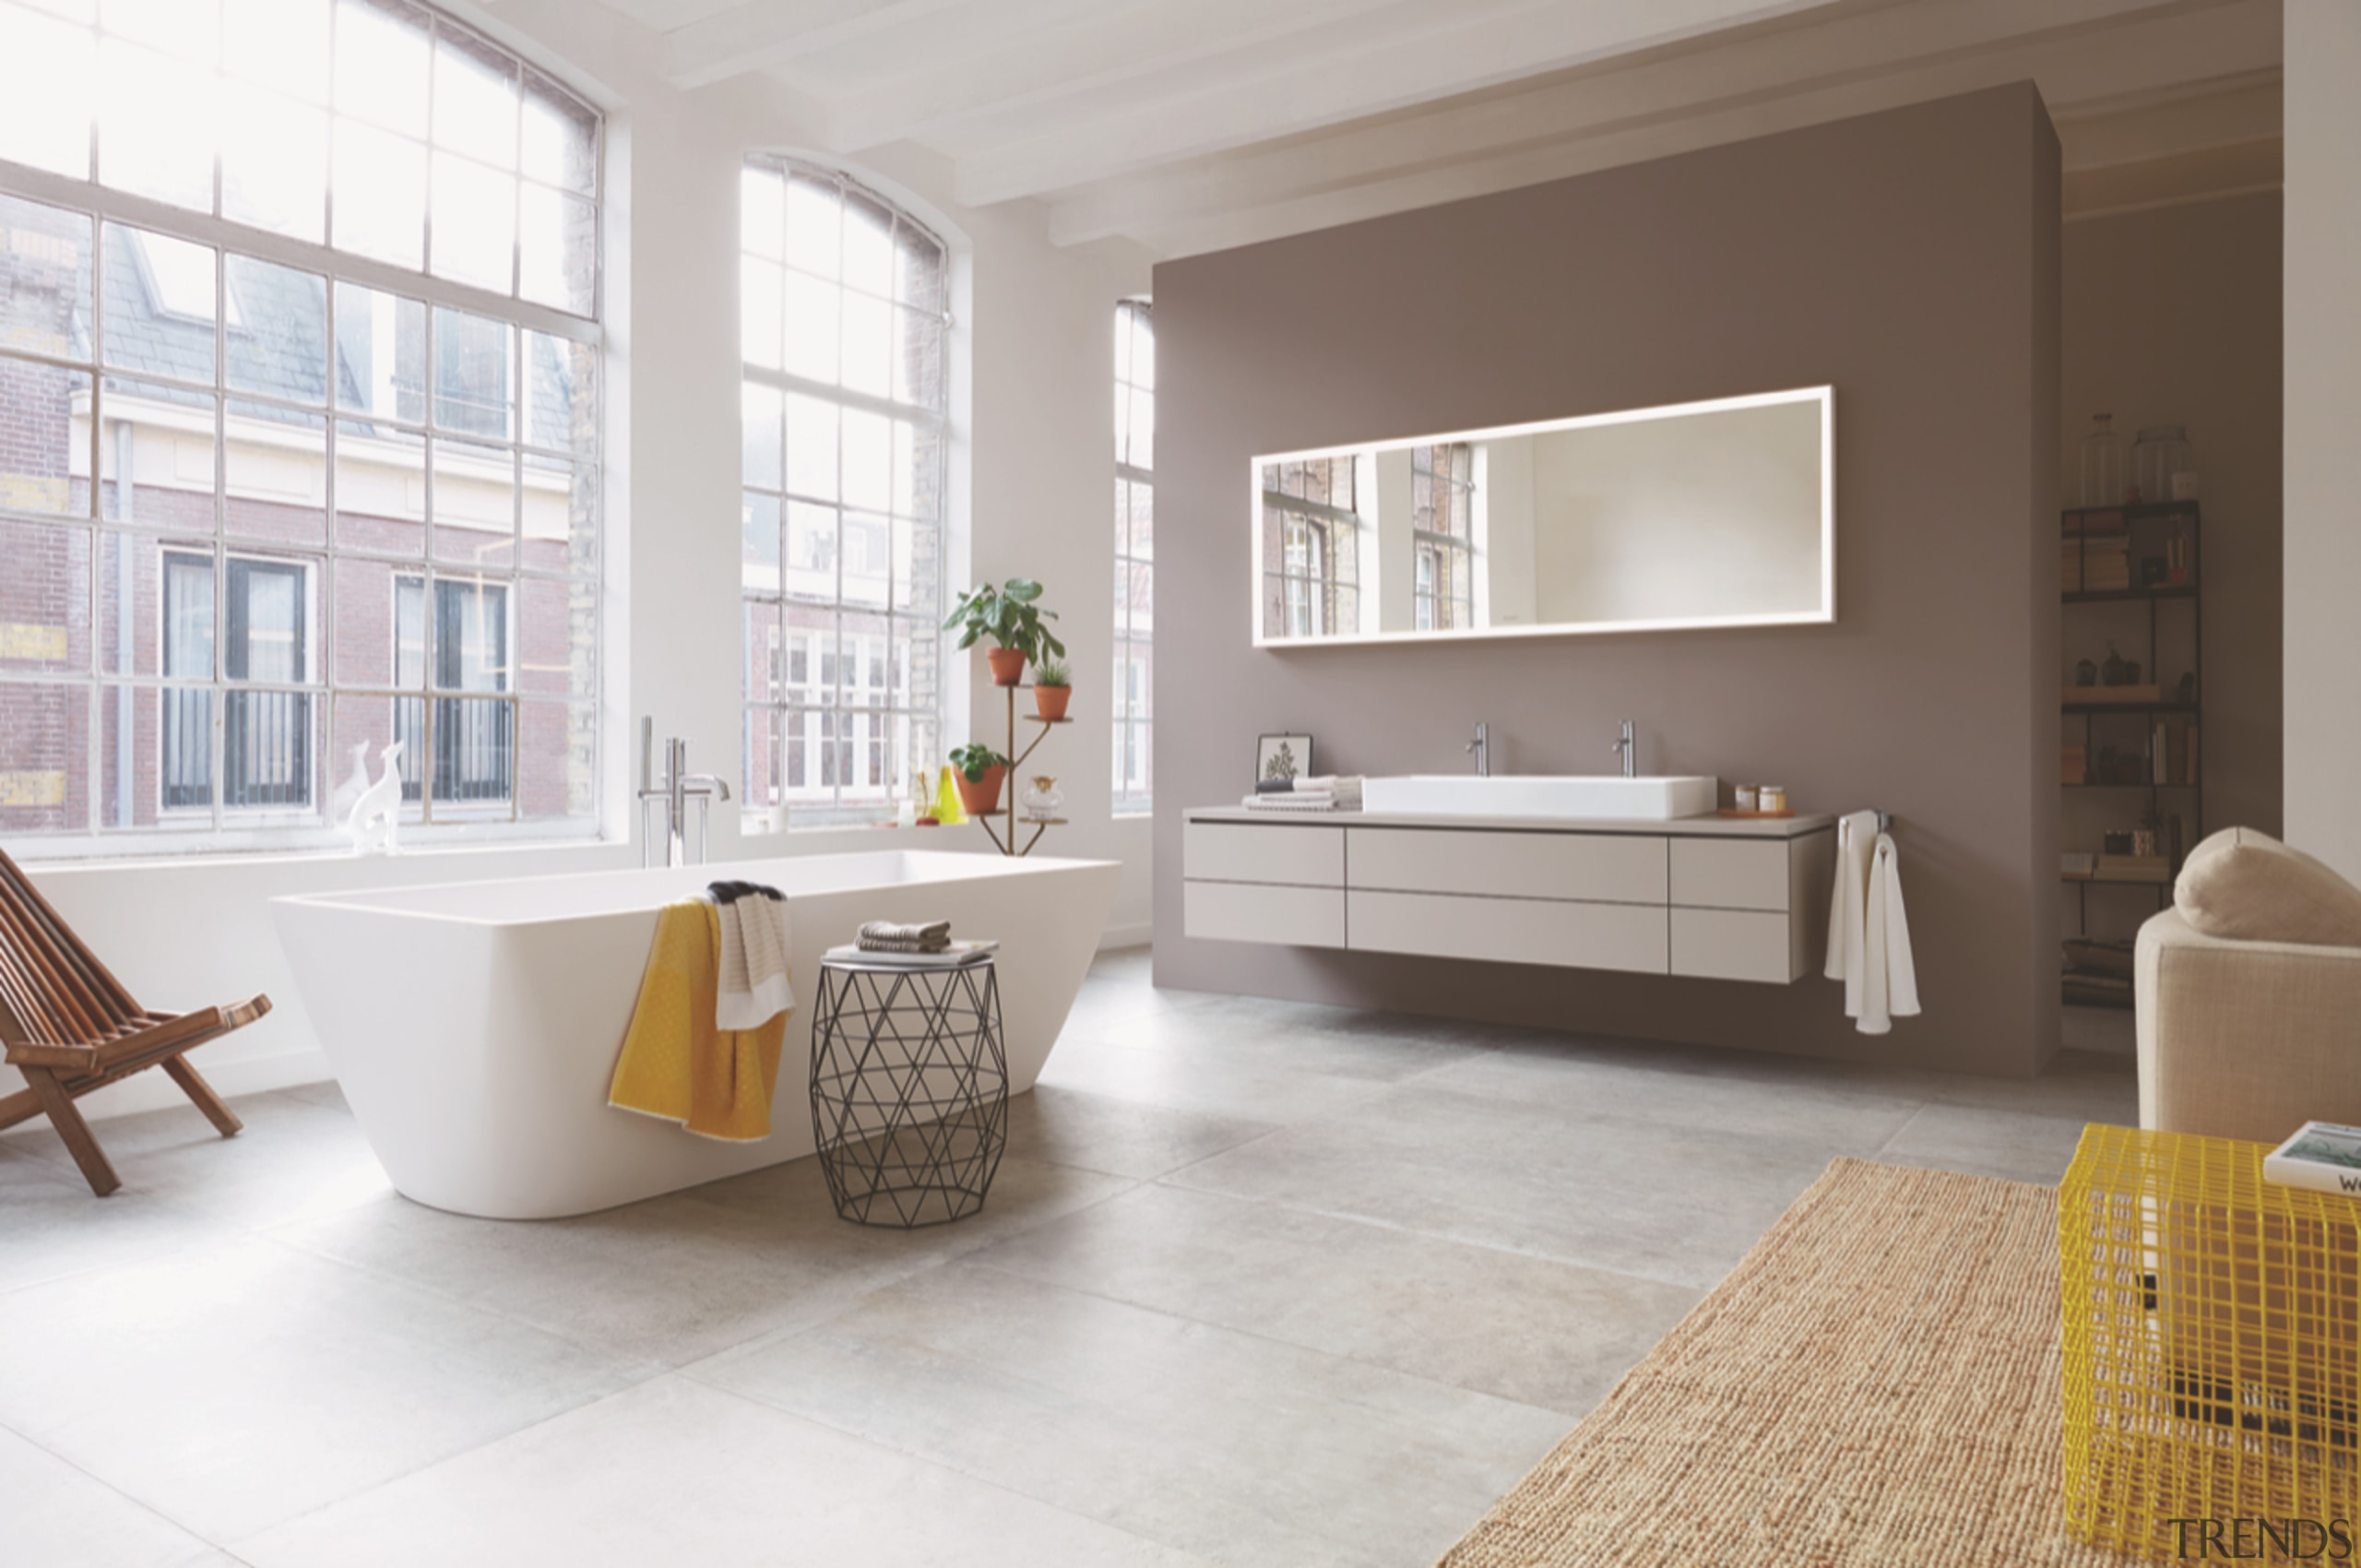 Duravit Bath - architecture | building | cabinetry architecture, building, cabinetry, coffee table, dining room, floor, flooring, furniture, home, house, interior design, living room, material property, property, real estate, room, table, tile, gray